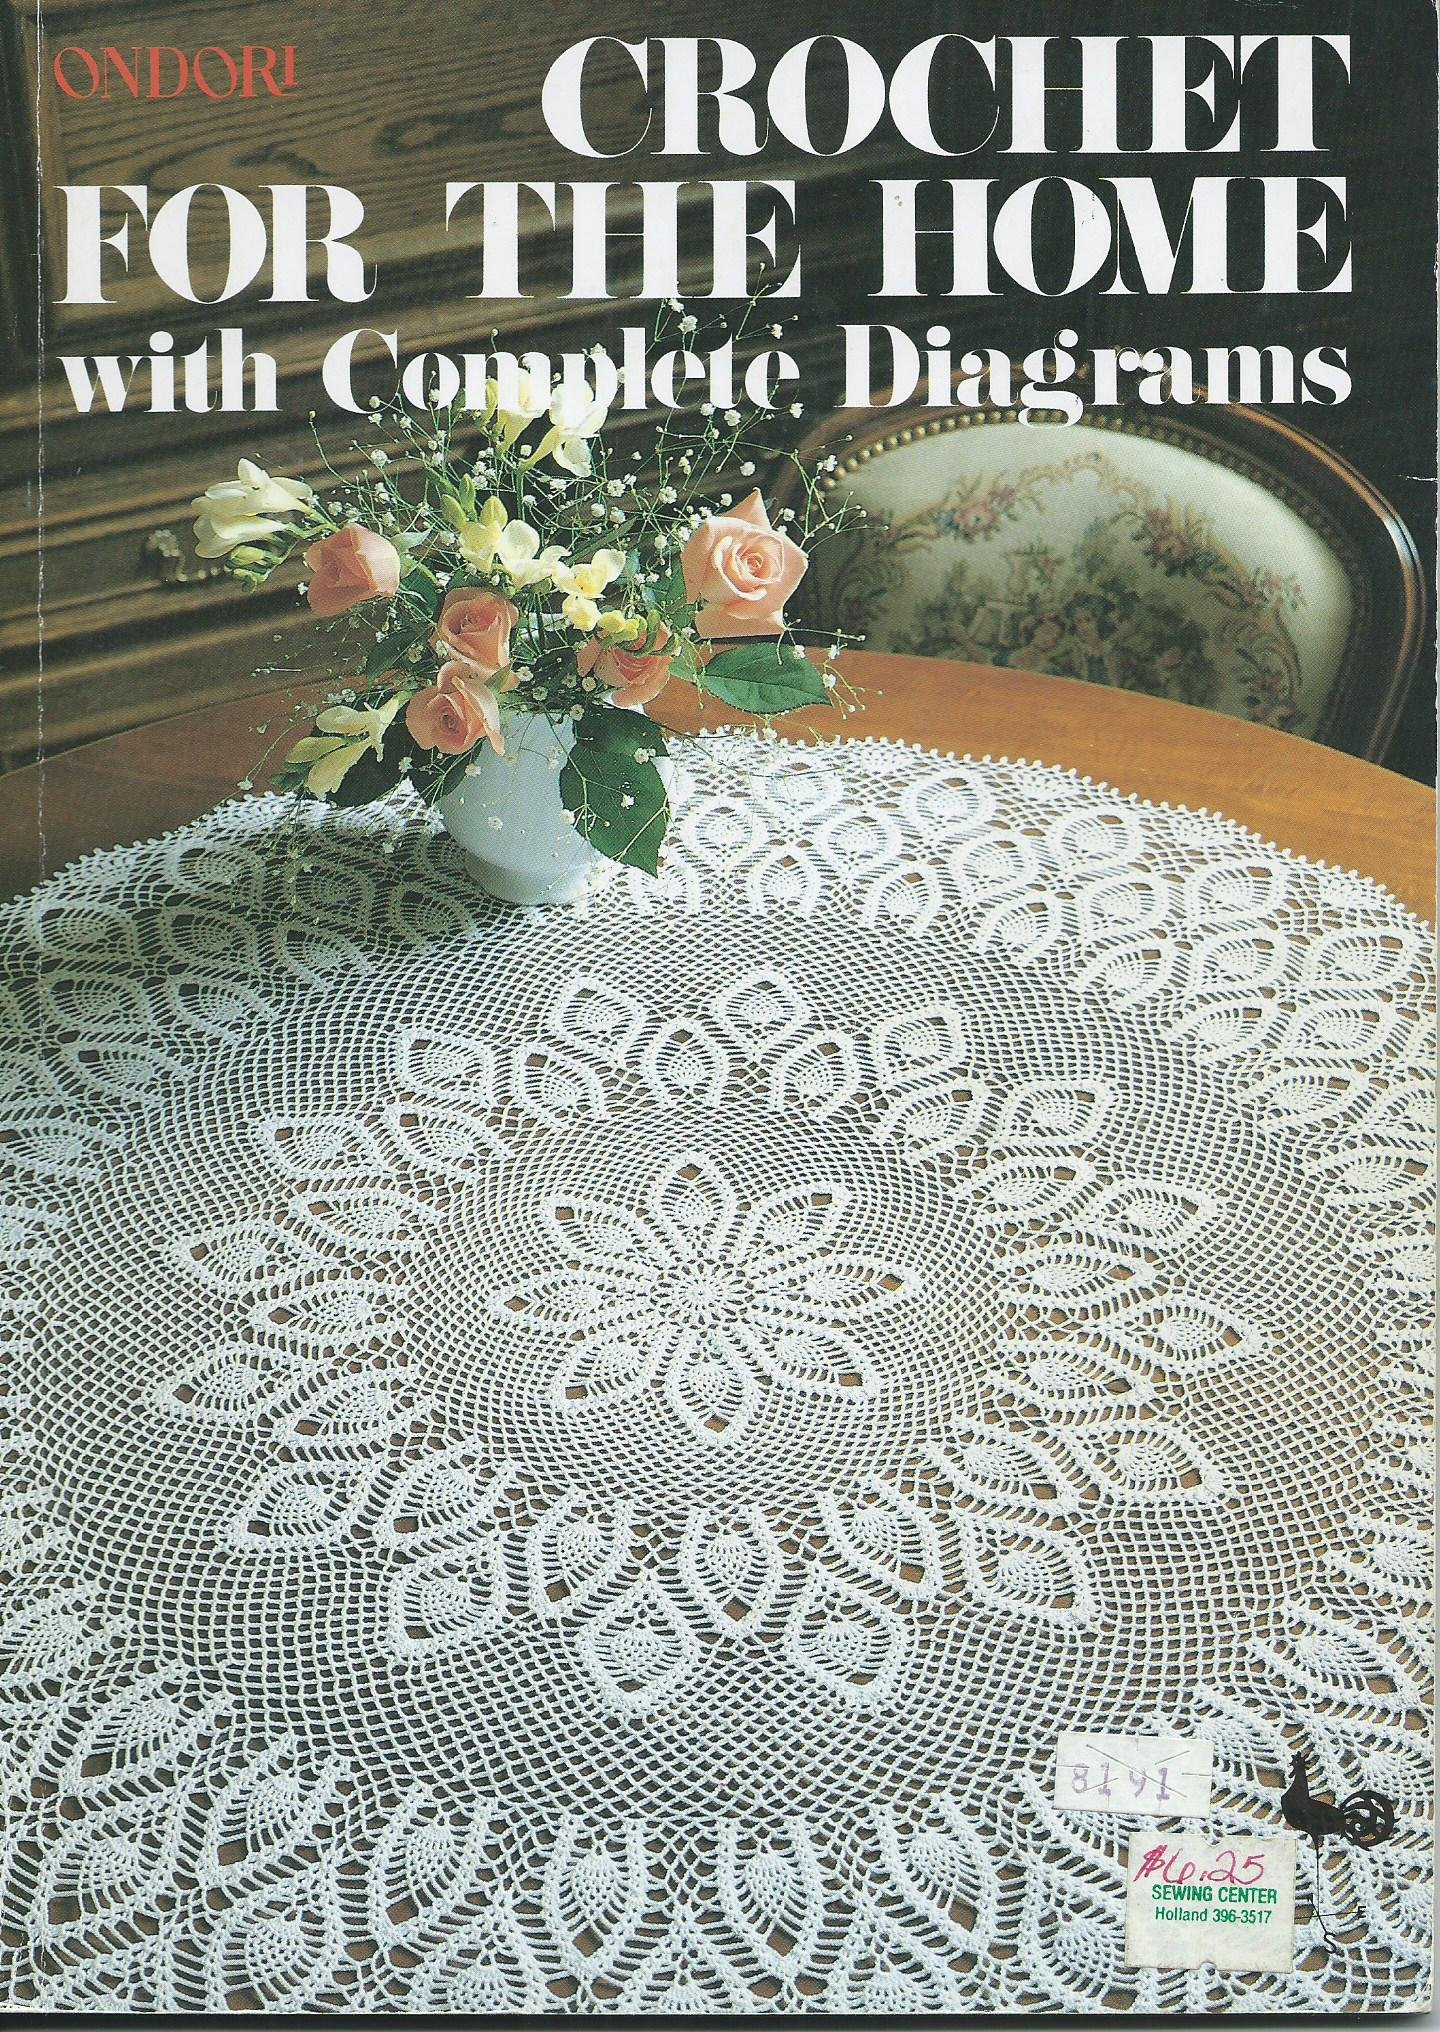 Ondori Crochet For The Home With Complete Diagrams No Author